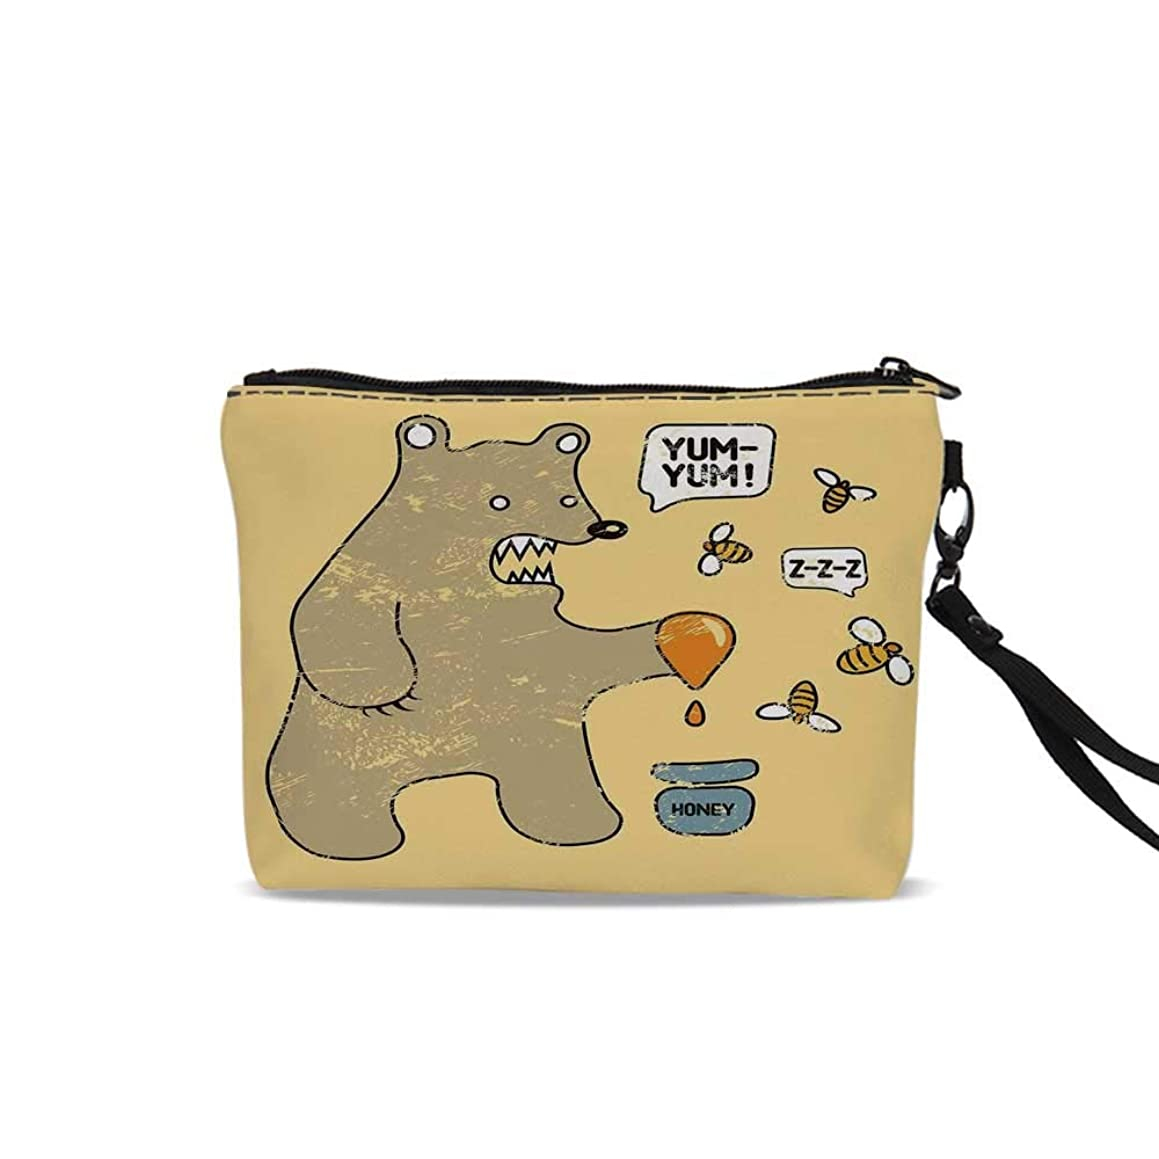 Cartoon Cosmetic Bag Pouch,Cute Caricature Style Bear with Bees and Honey Saying Yum Yum Kids Comic Graphic For Women Girl,9